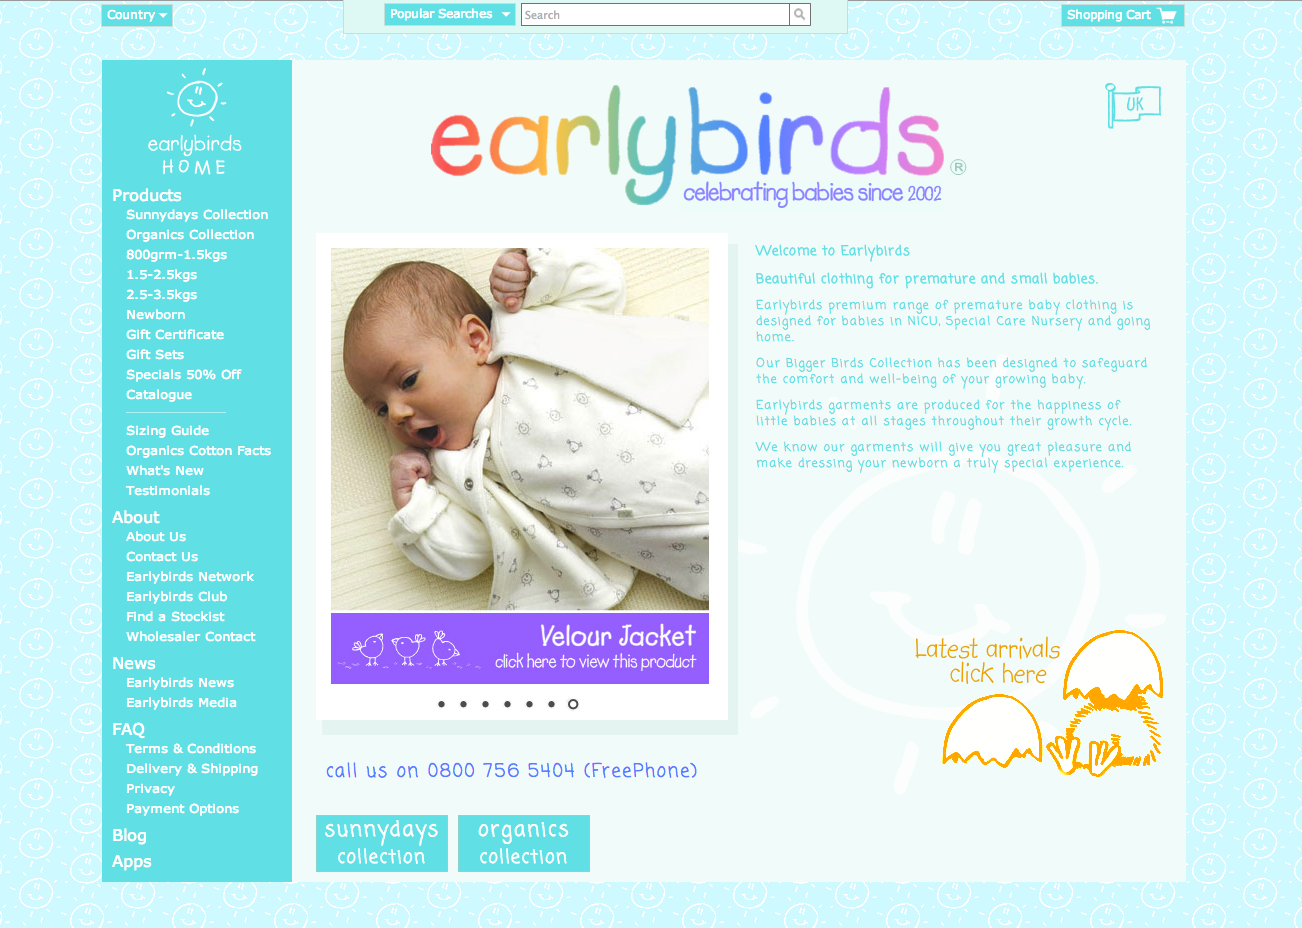 Earlybirds Premature Baby Clothes